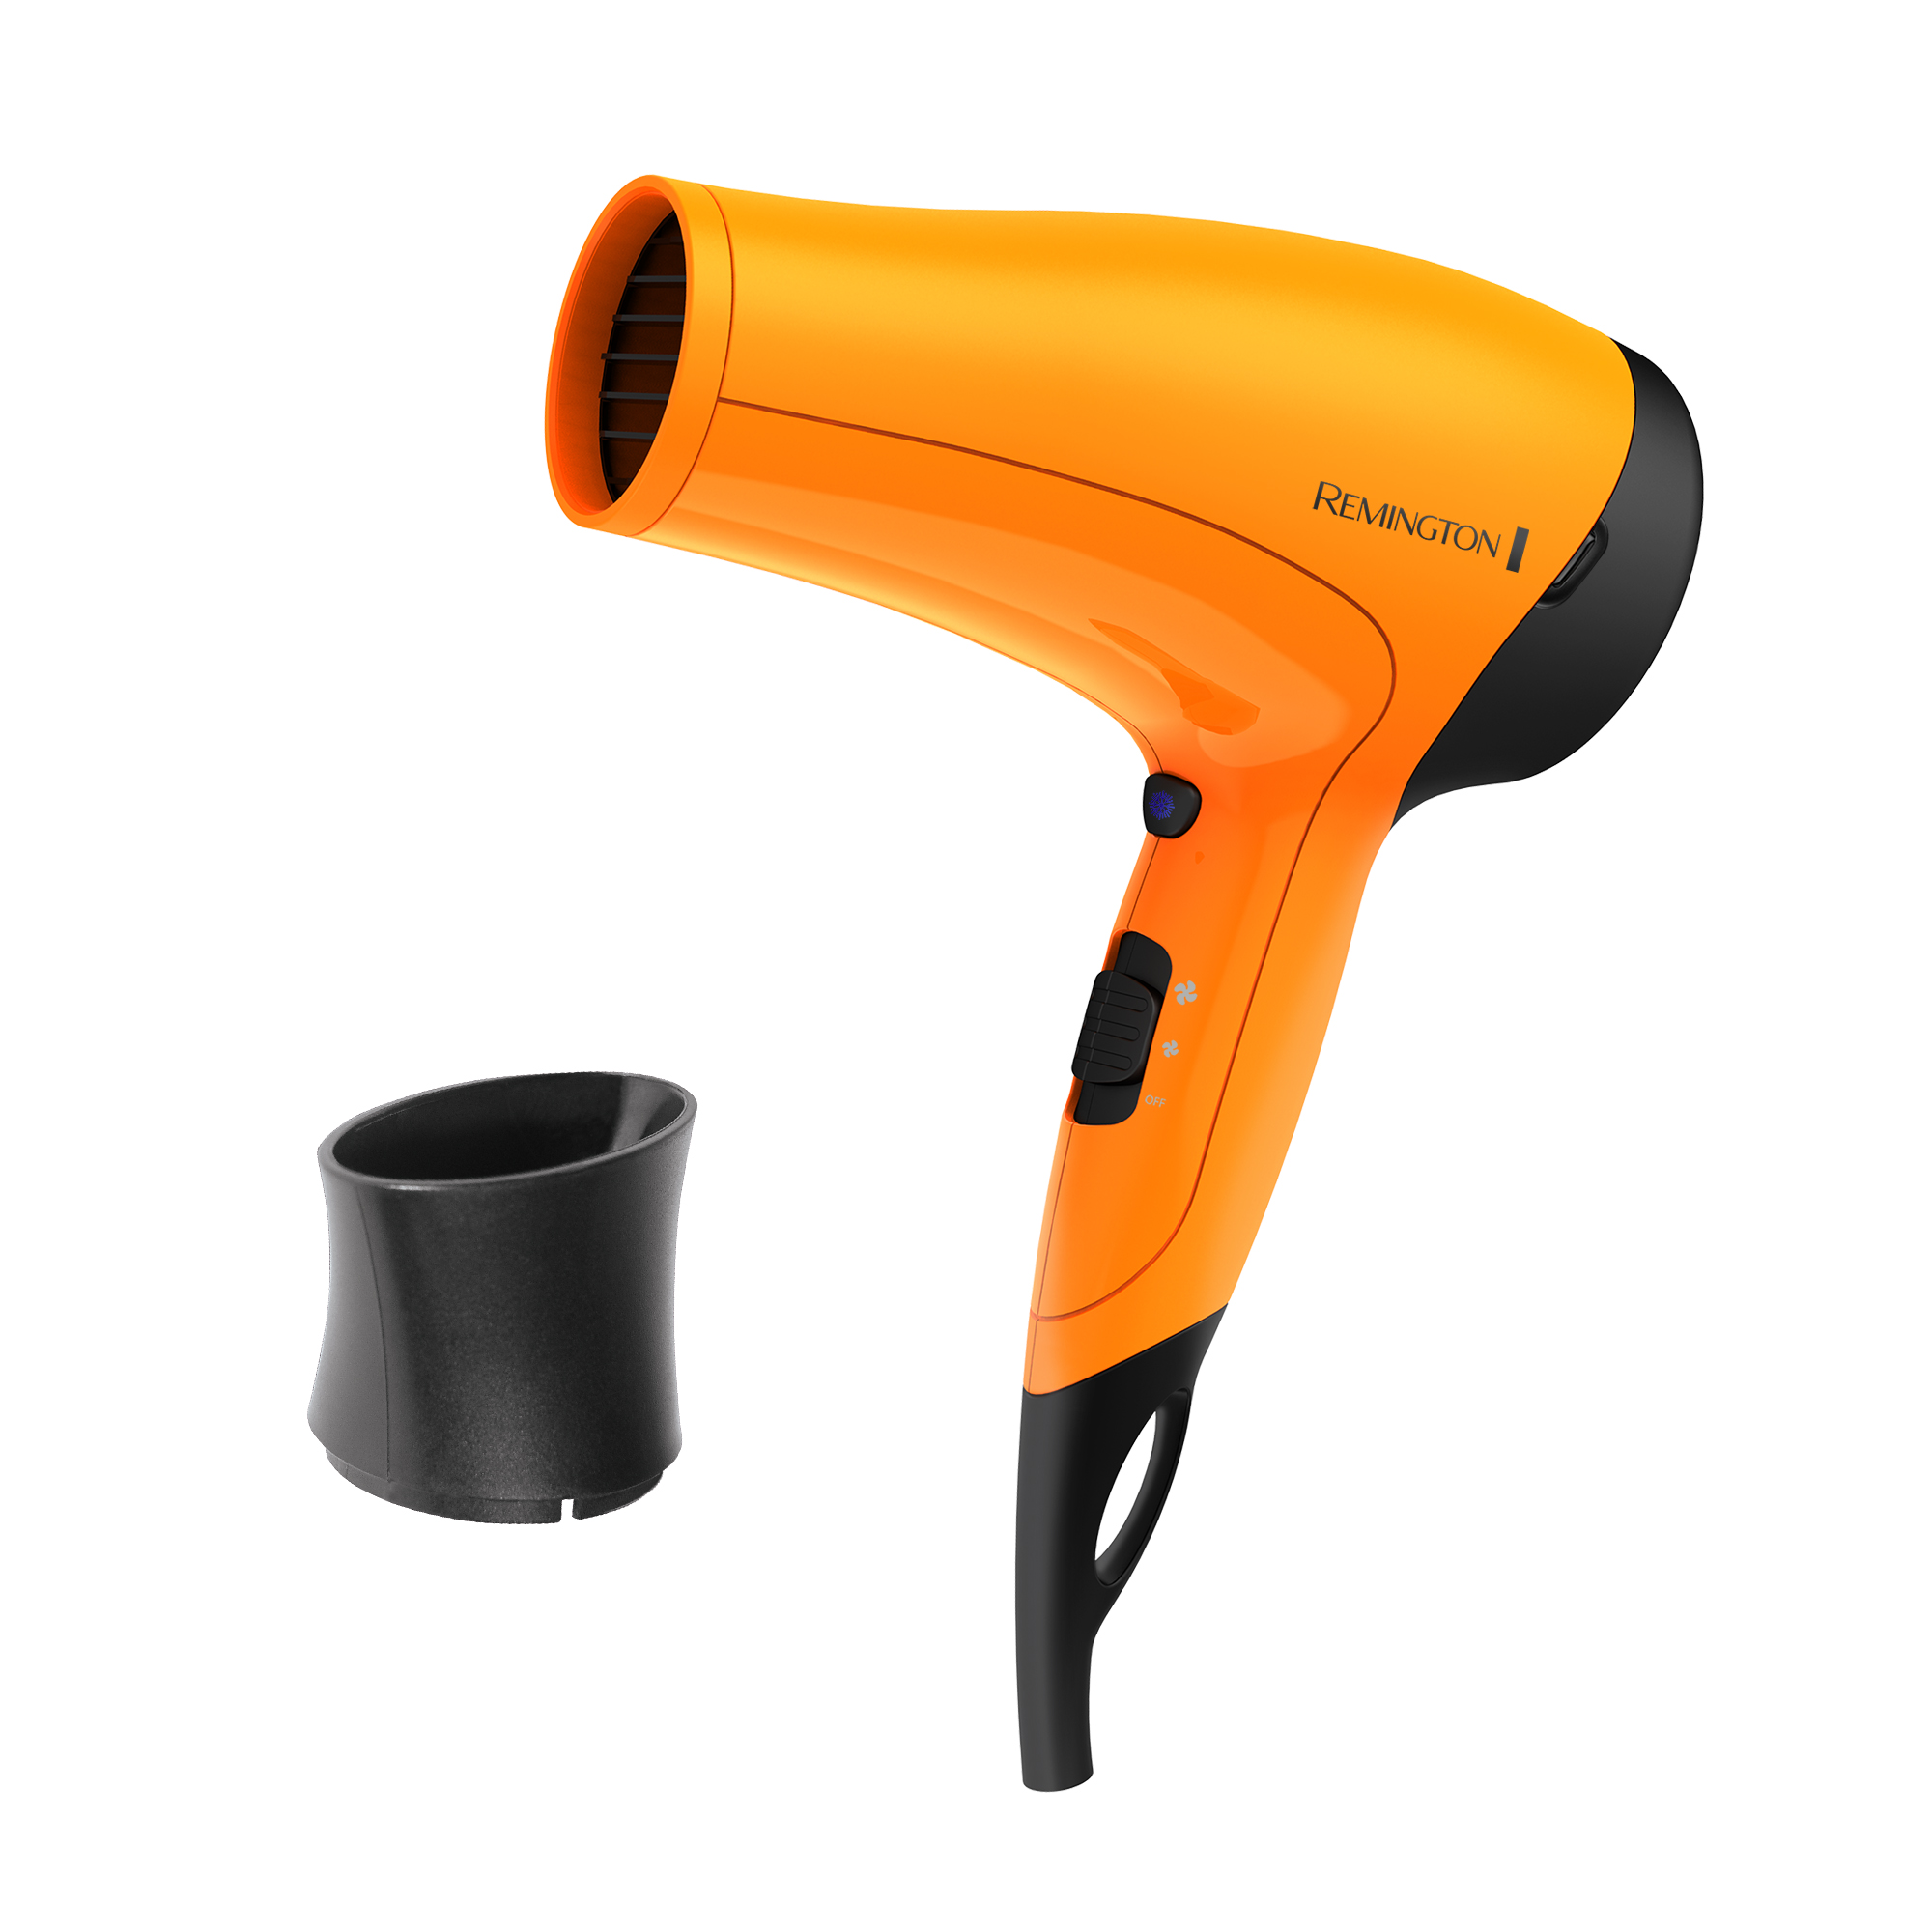 Remington Ionic Ceramic Hair Dryer with Cool Shot, Orange, D3015